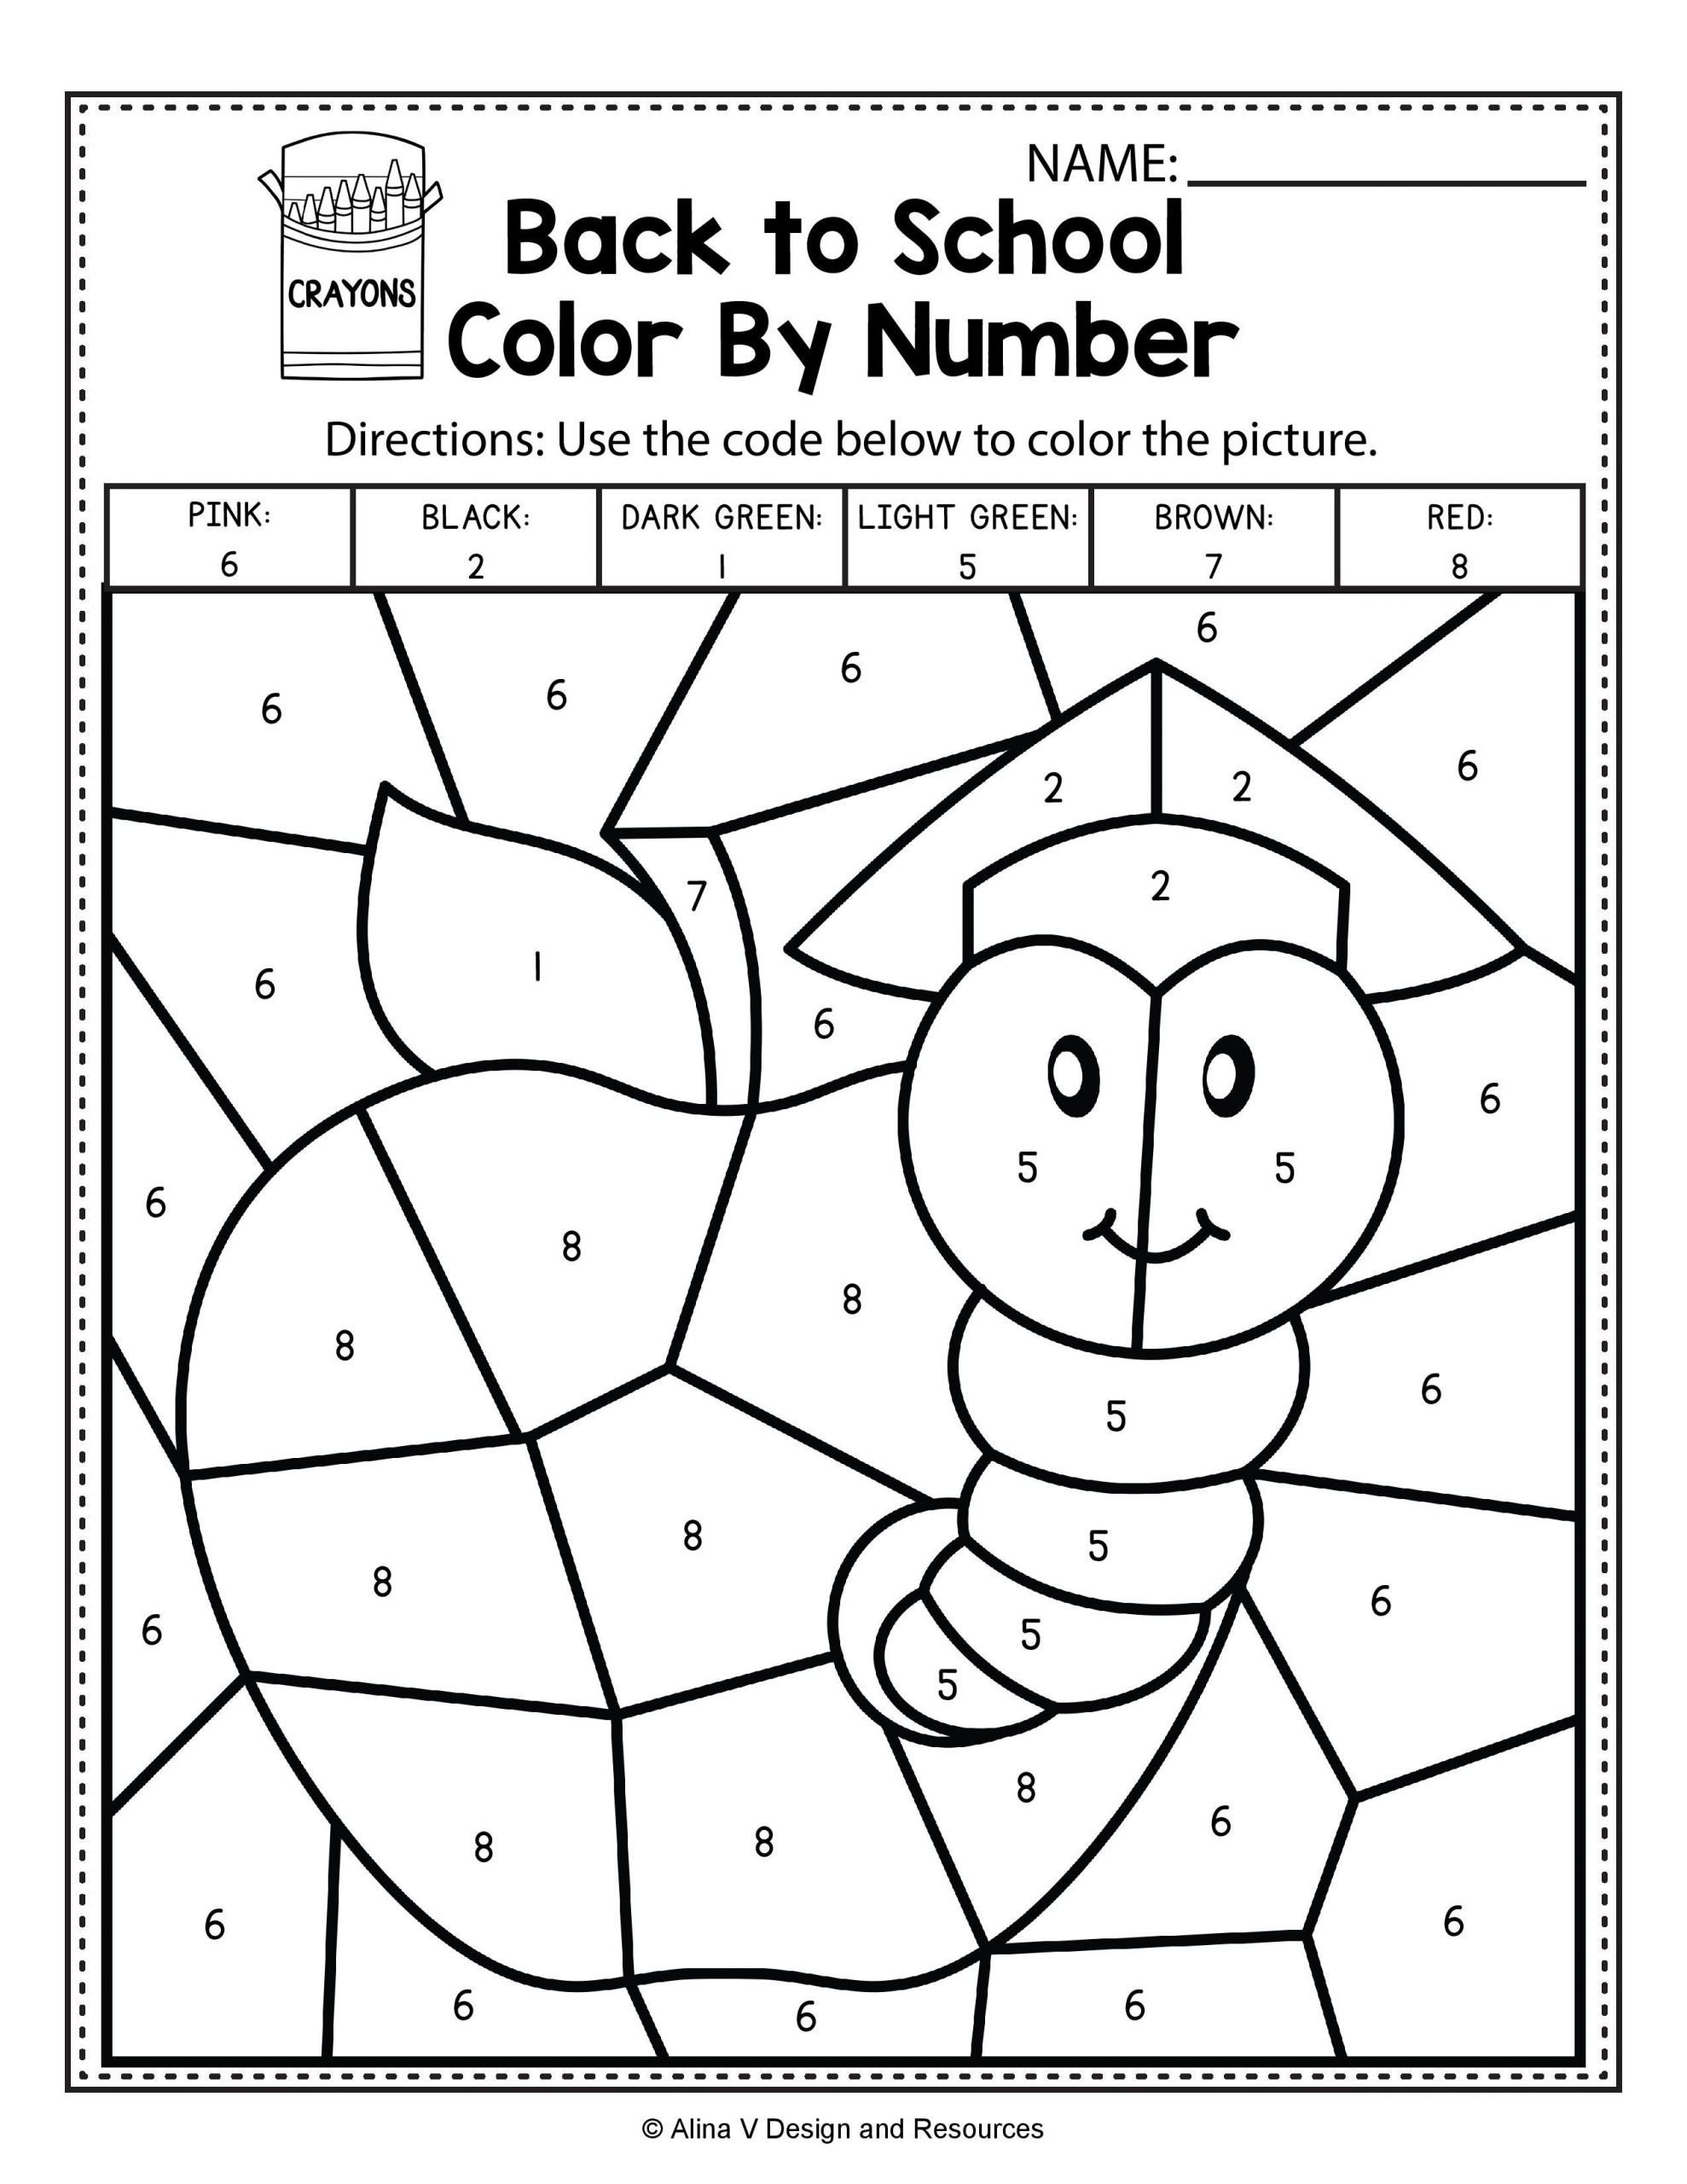 coloring sheet back to school color by number math worksheets and activities for sheets frees christmas scaled